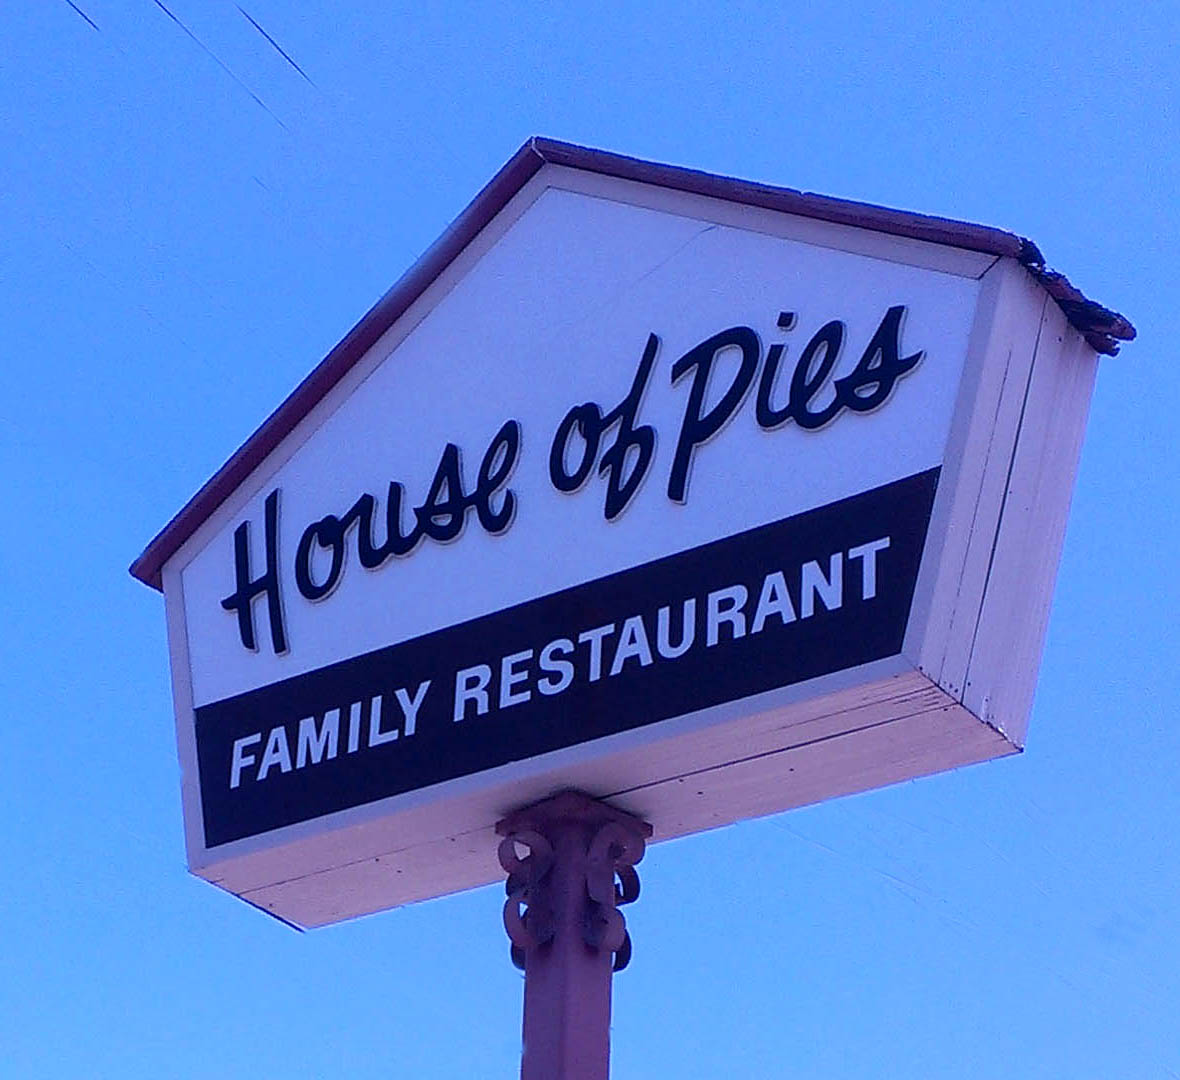 I Had Some Time Between Appointments, So I Headed Over To The House Of Pies  In Los Feliz. Iu0027d Meant To Go There With Someone Who Could Eat Pie, ...